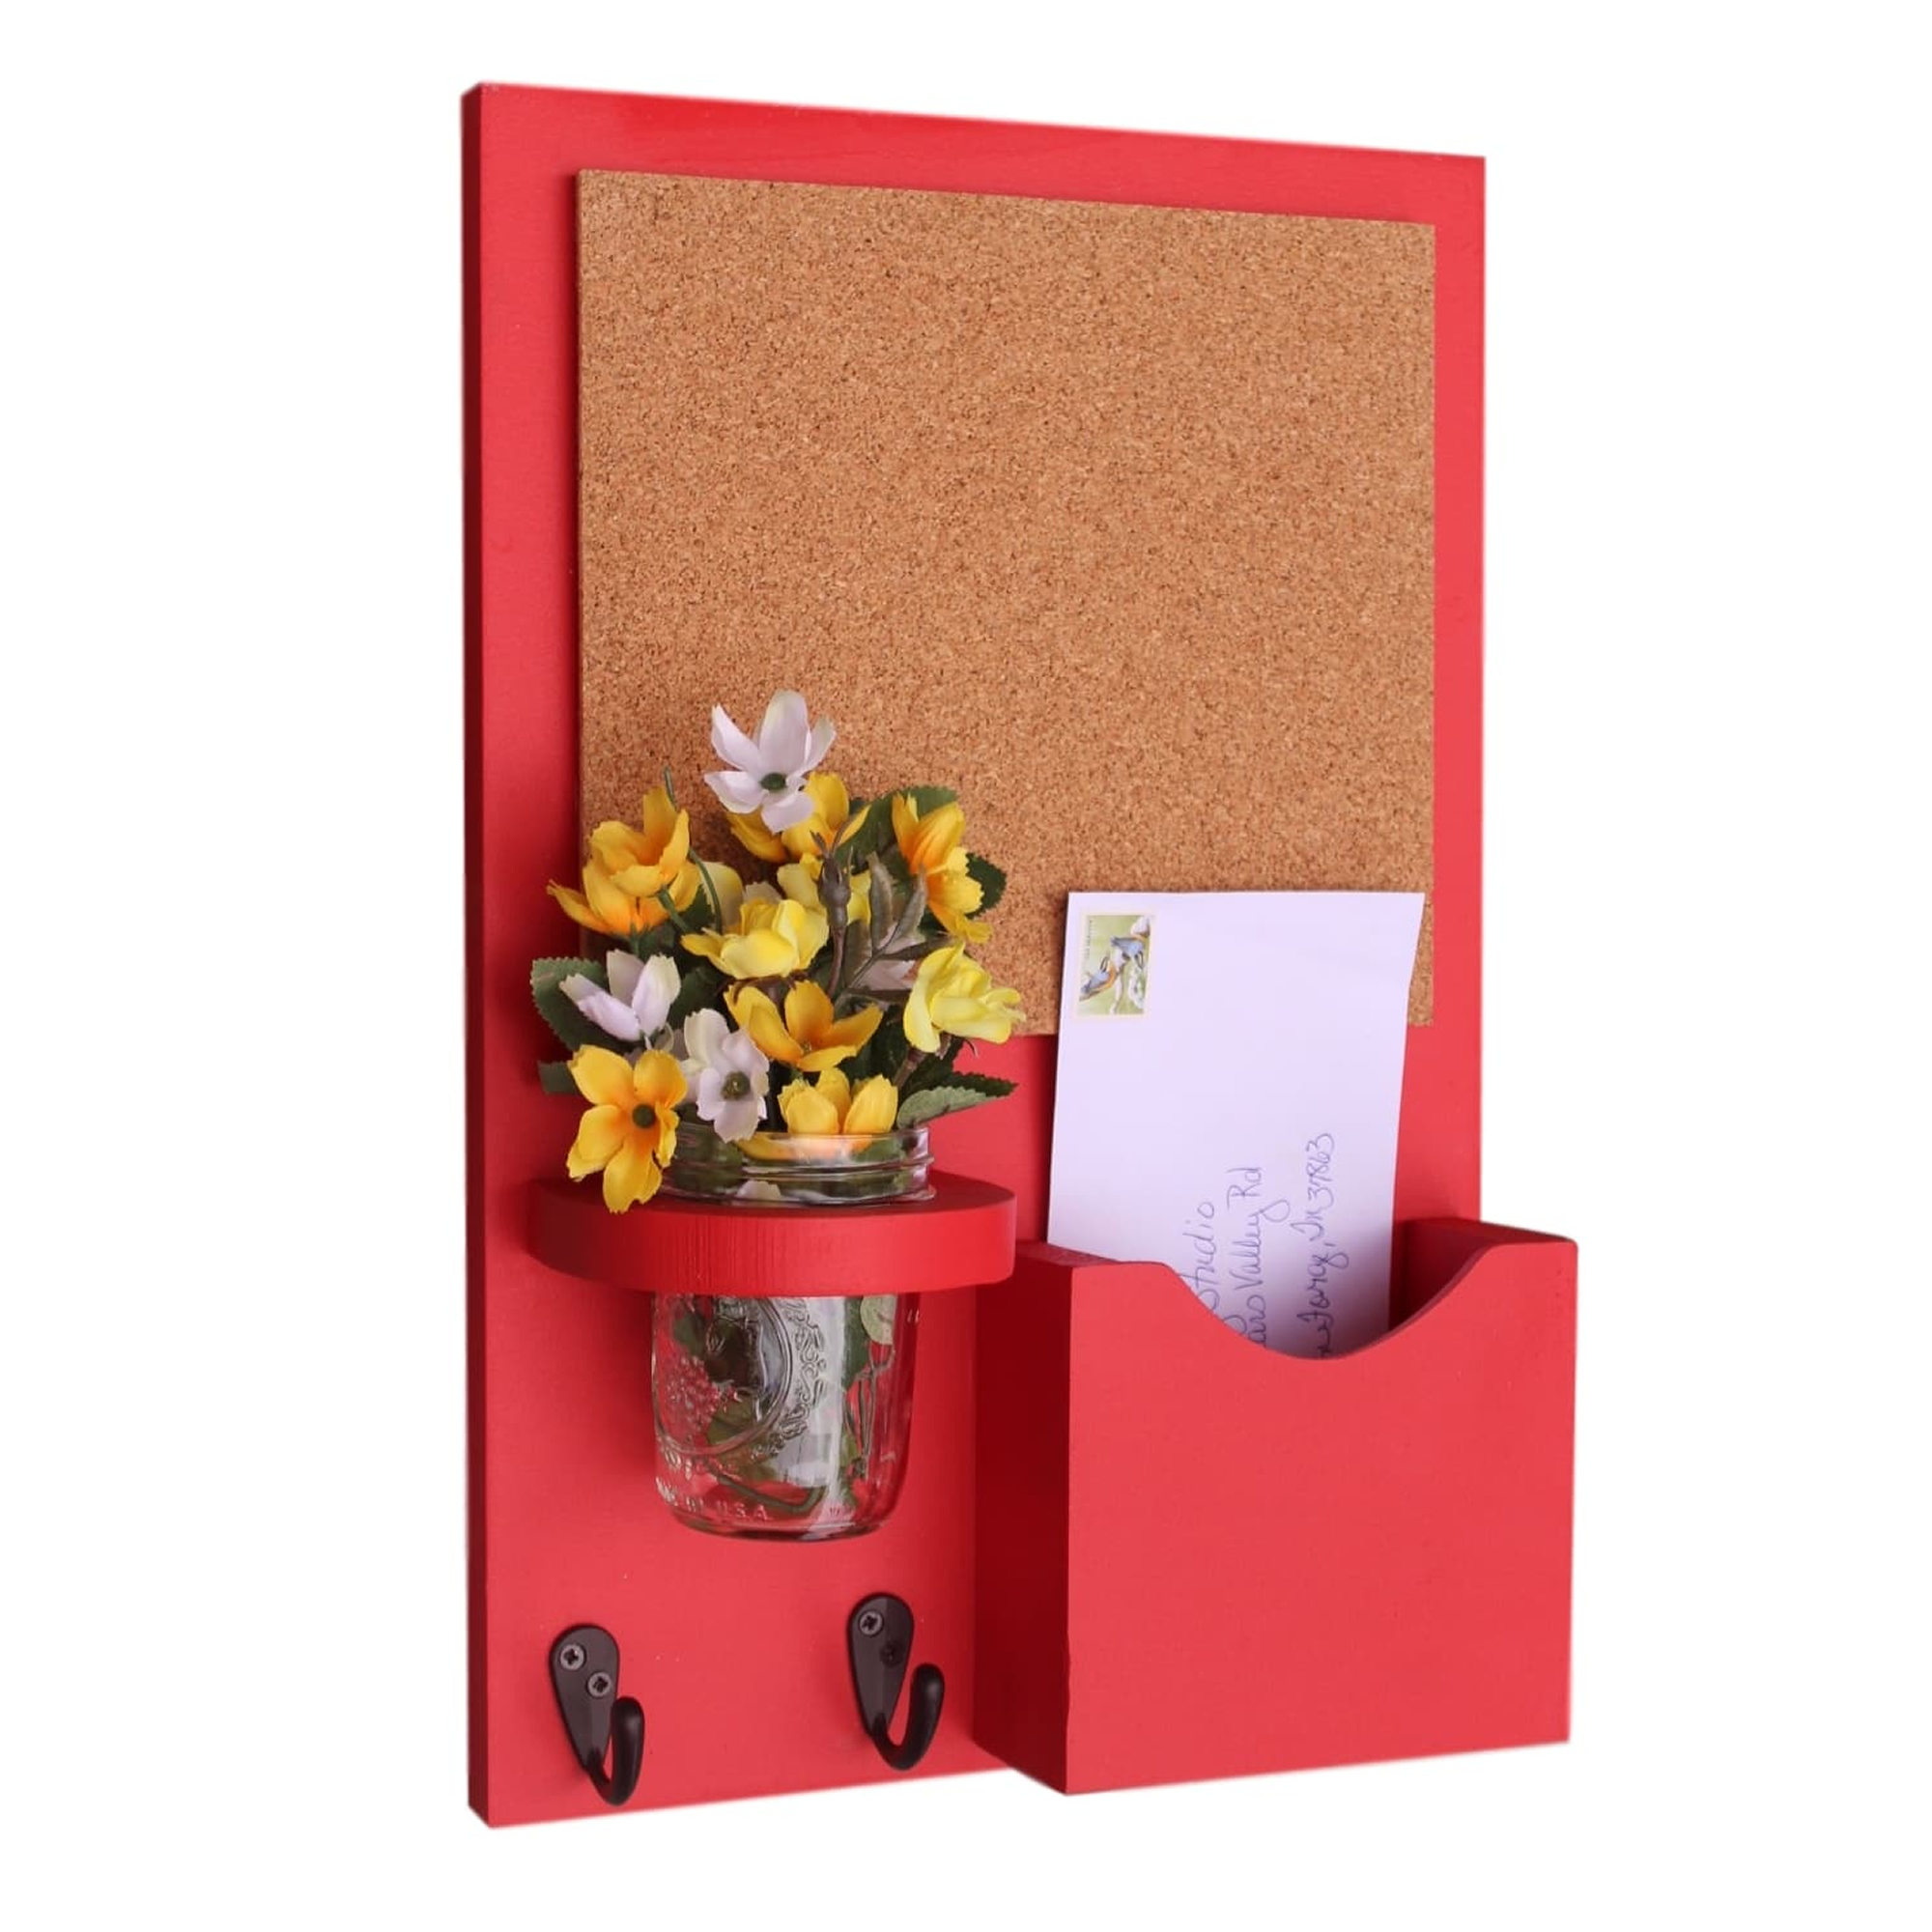 Mail Organizer with Small Cork Board, Key Hooks & Mason Jar